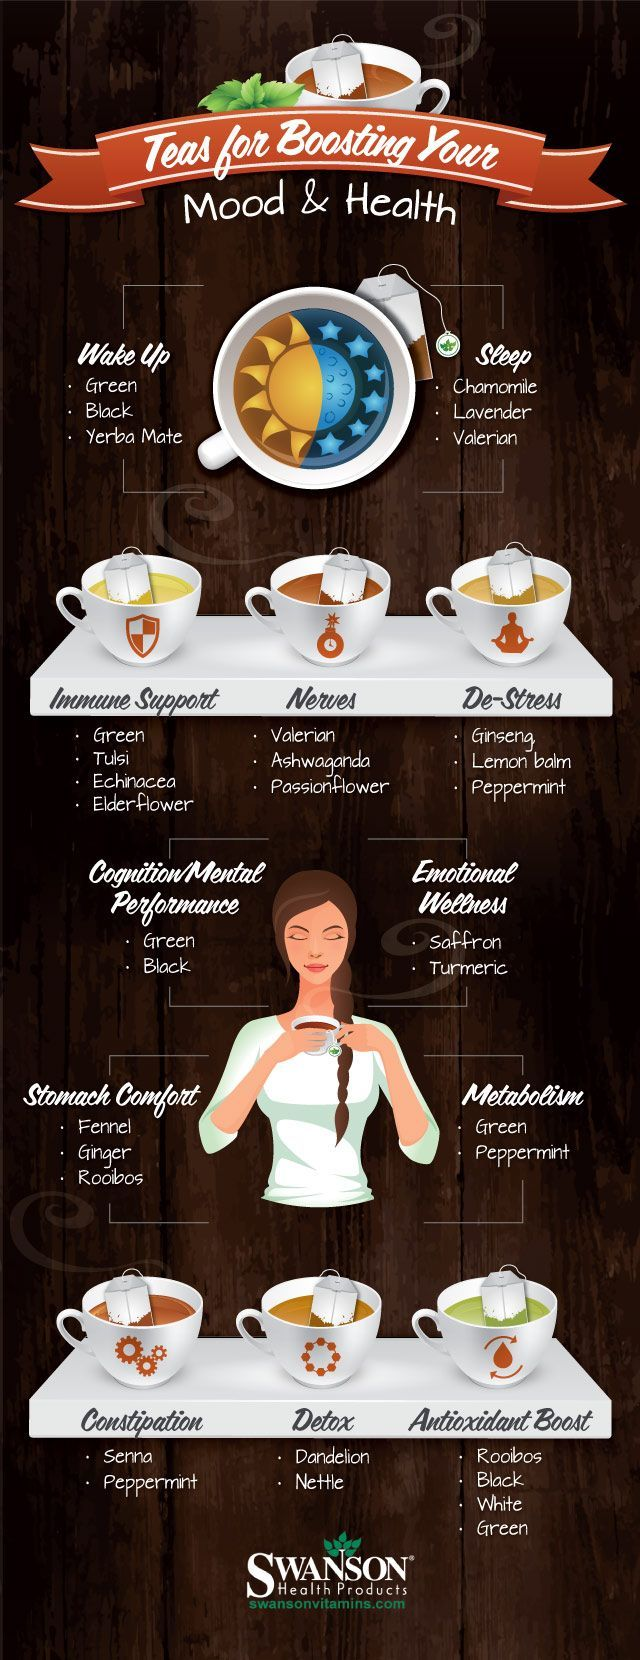 Pick your tea to help your mood and health issues. Tips to Enhance Your Mood & Health with Tea infographic